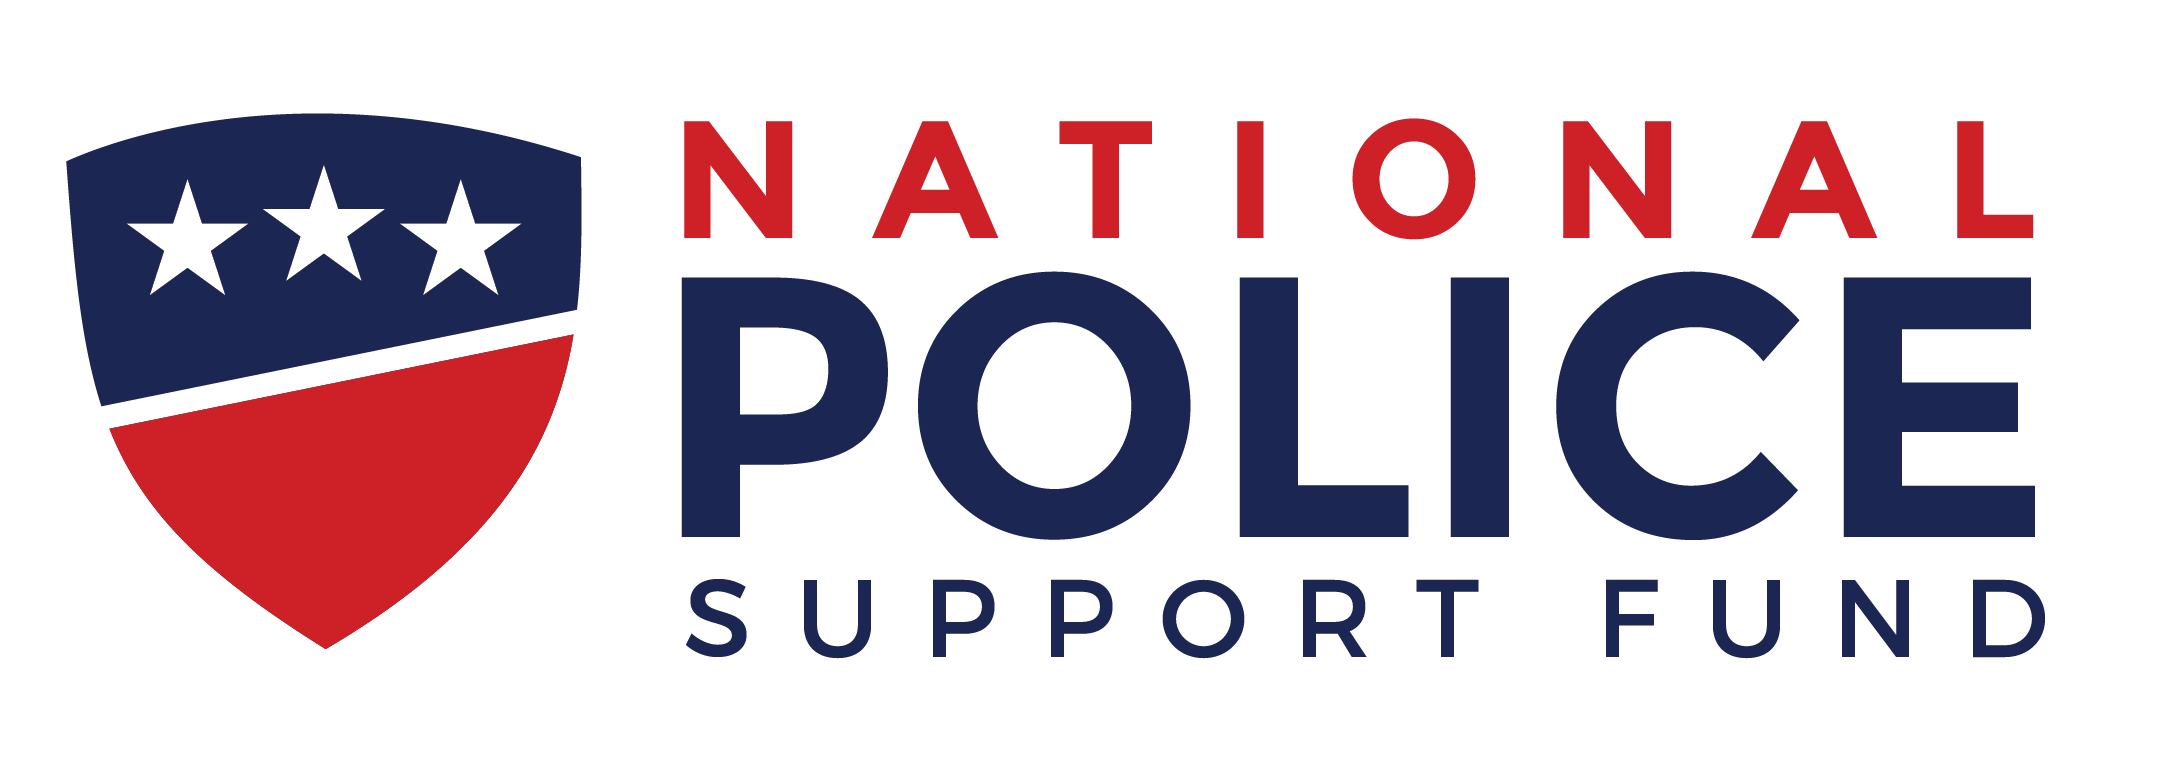 National Police Support Fund Logo